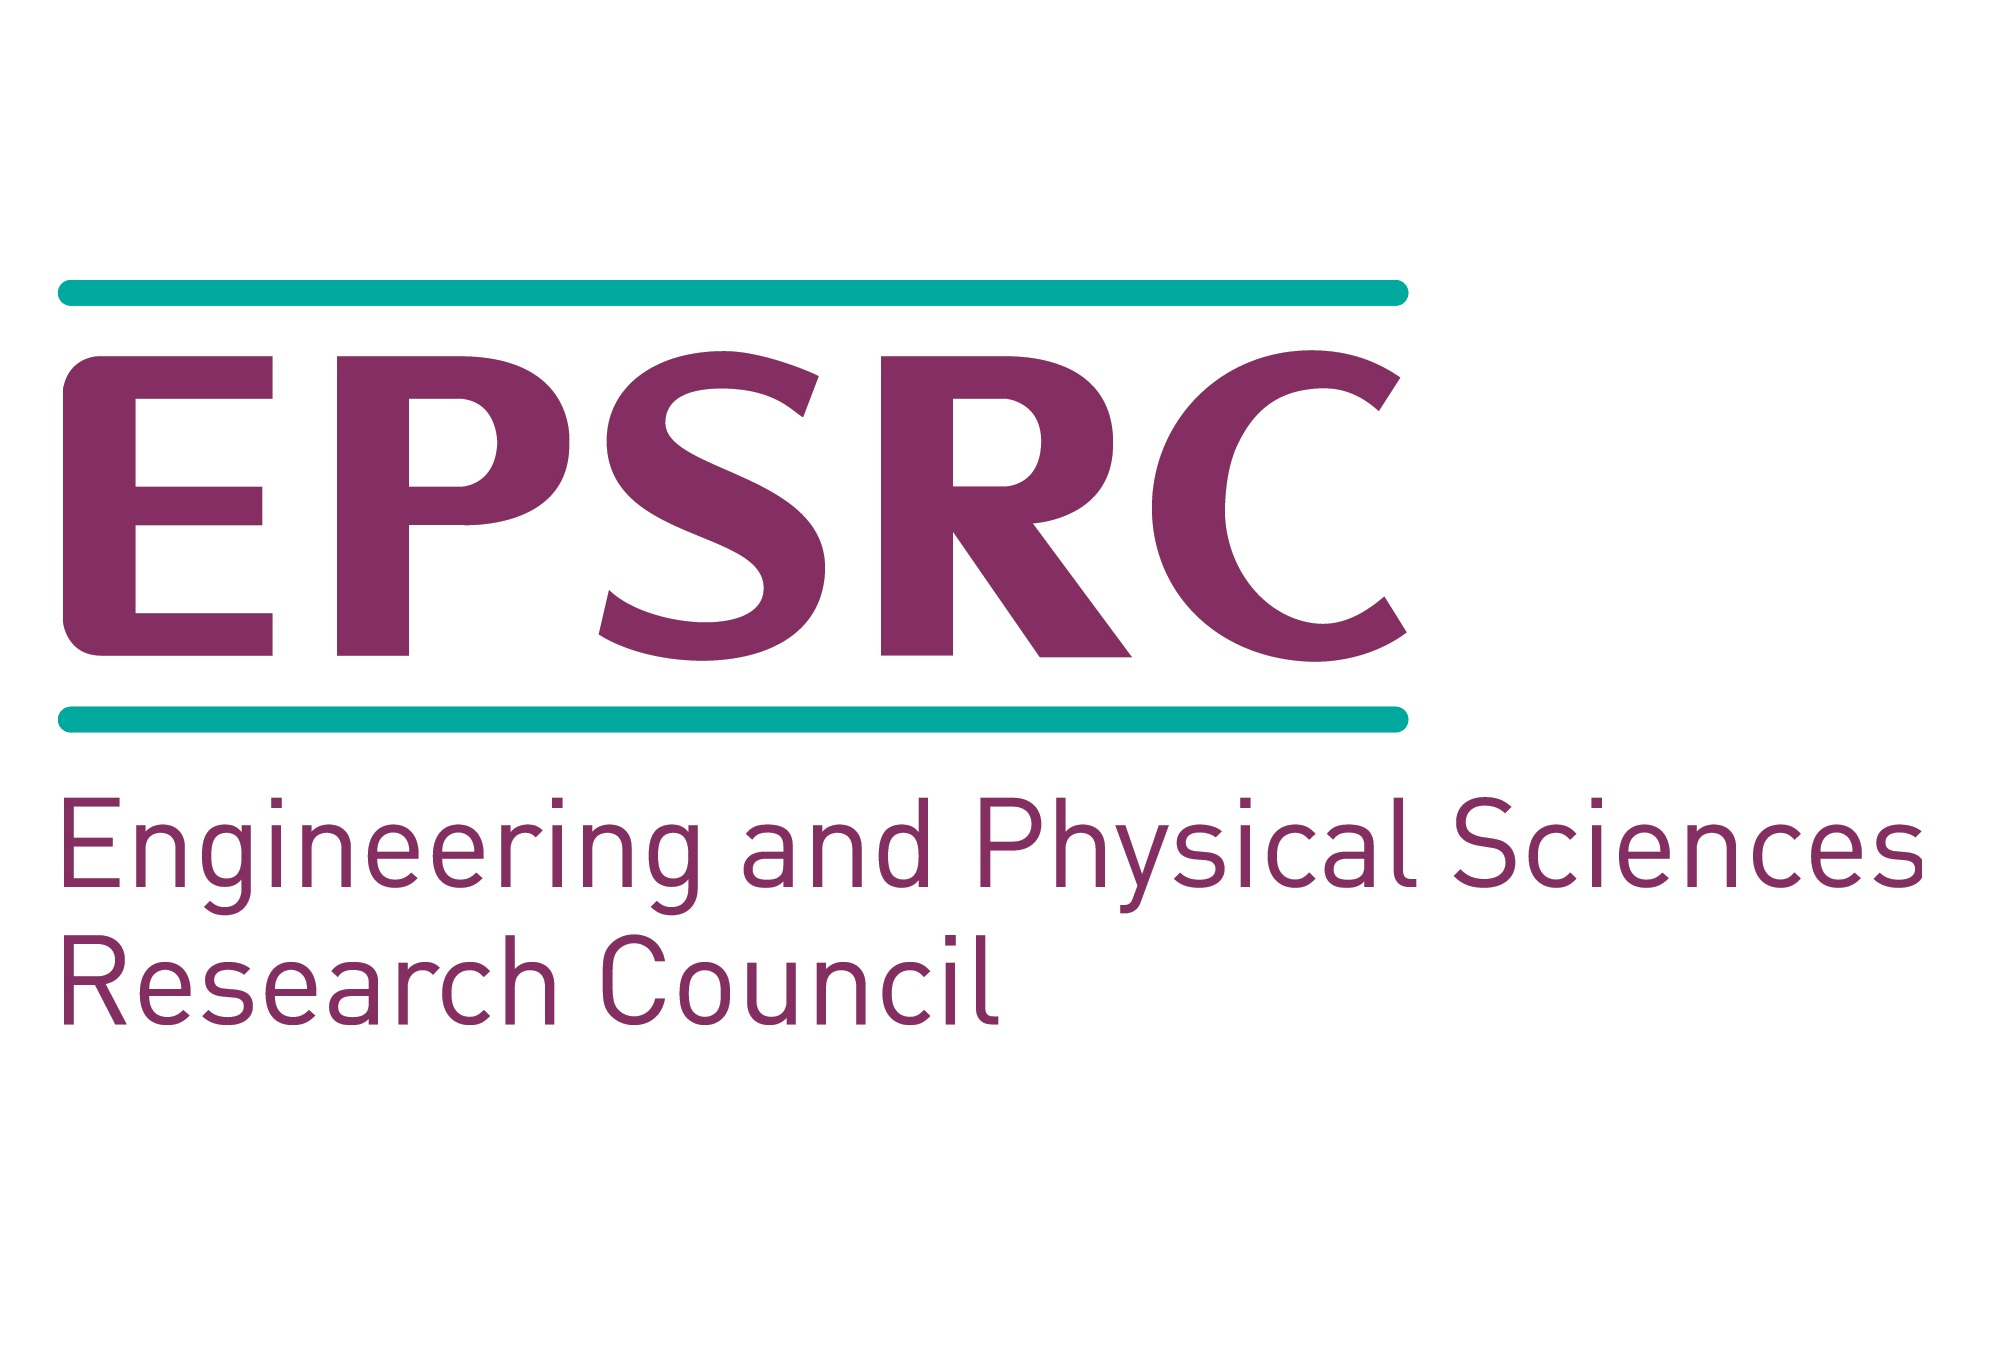 Engineering and Physical Sciences Research Council (EPSRC) - EPSRC is the main UK government agency for funding research and training in engineering and the physical sciences, investing more than £800 million a year in a broad range of subjects - from mathematics to materials science, and from information technology to structural engineering.